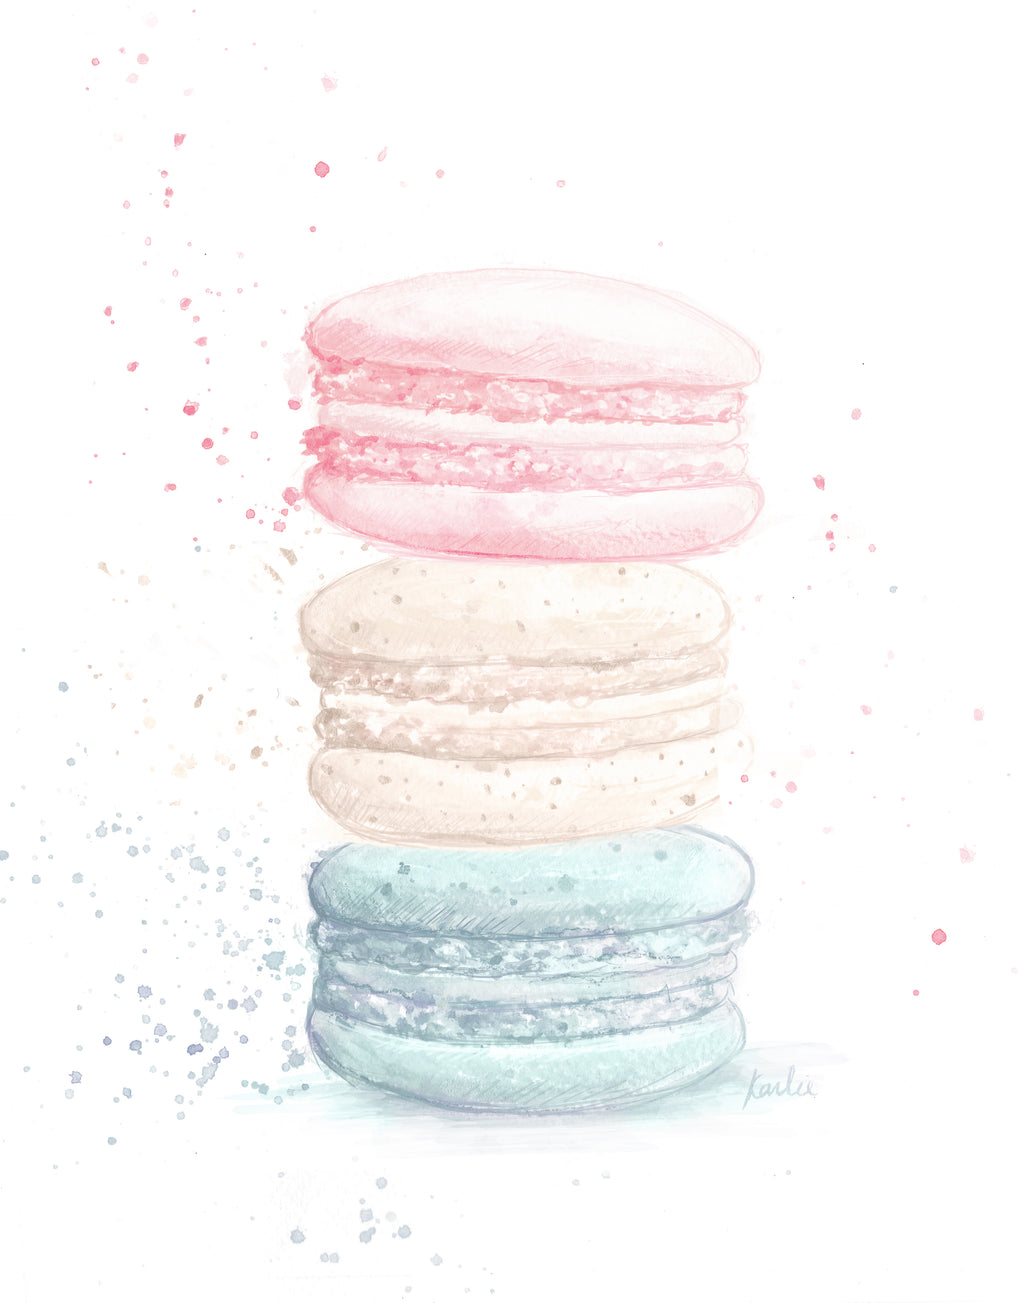 Stacked Macaron Art Print | Muted Colours Illustration | 5x7, 8x10, 11x14